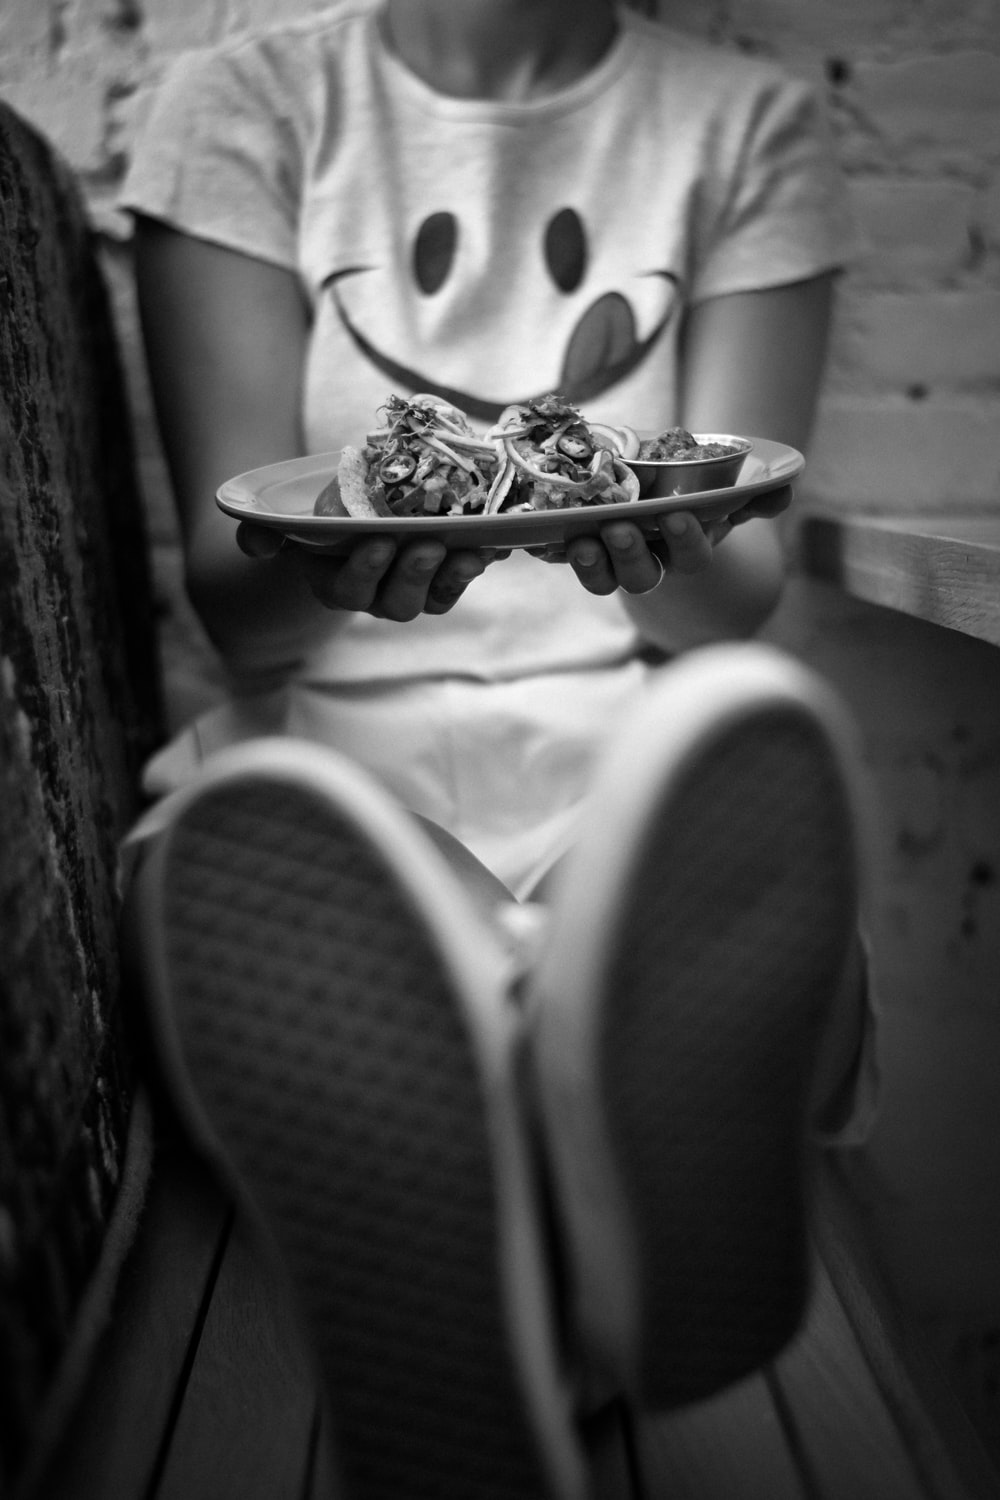 grayscale photography of woman holding plate with food while sitting and leaning near wall